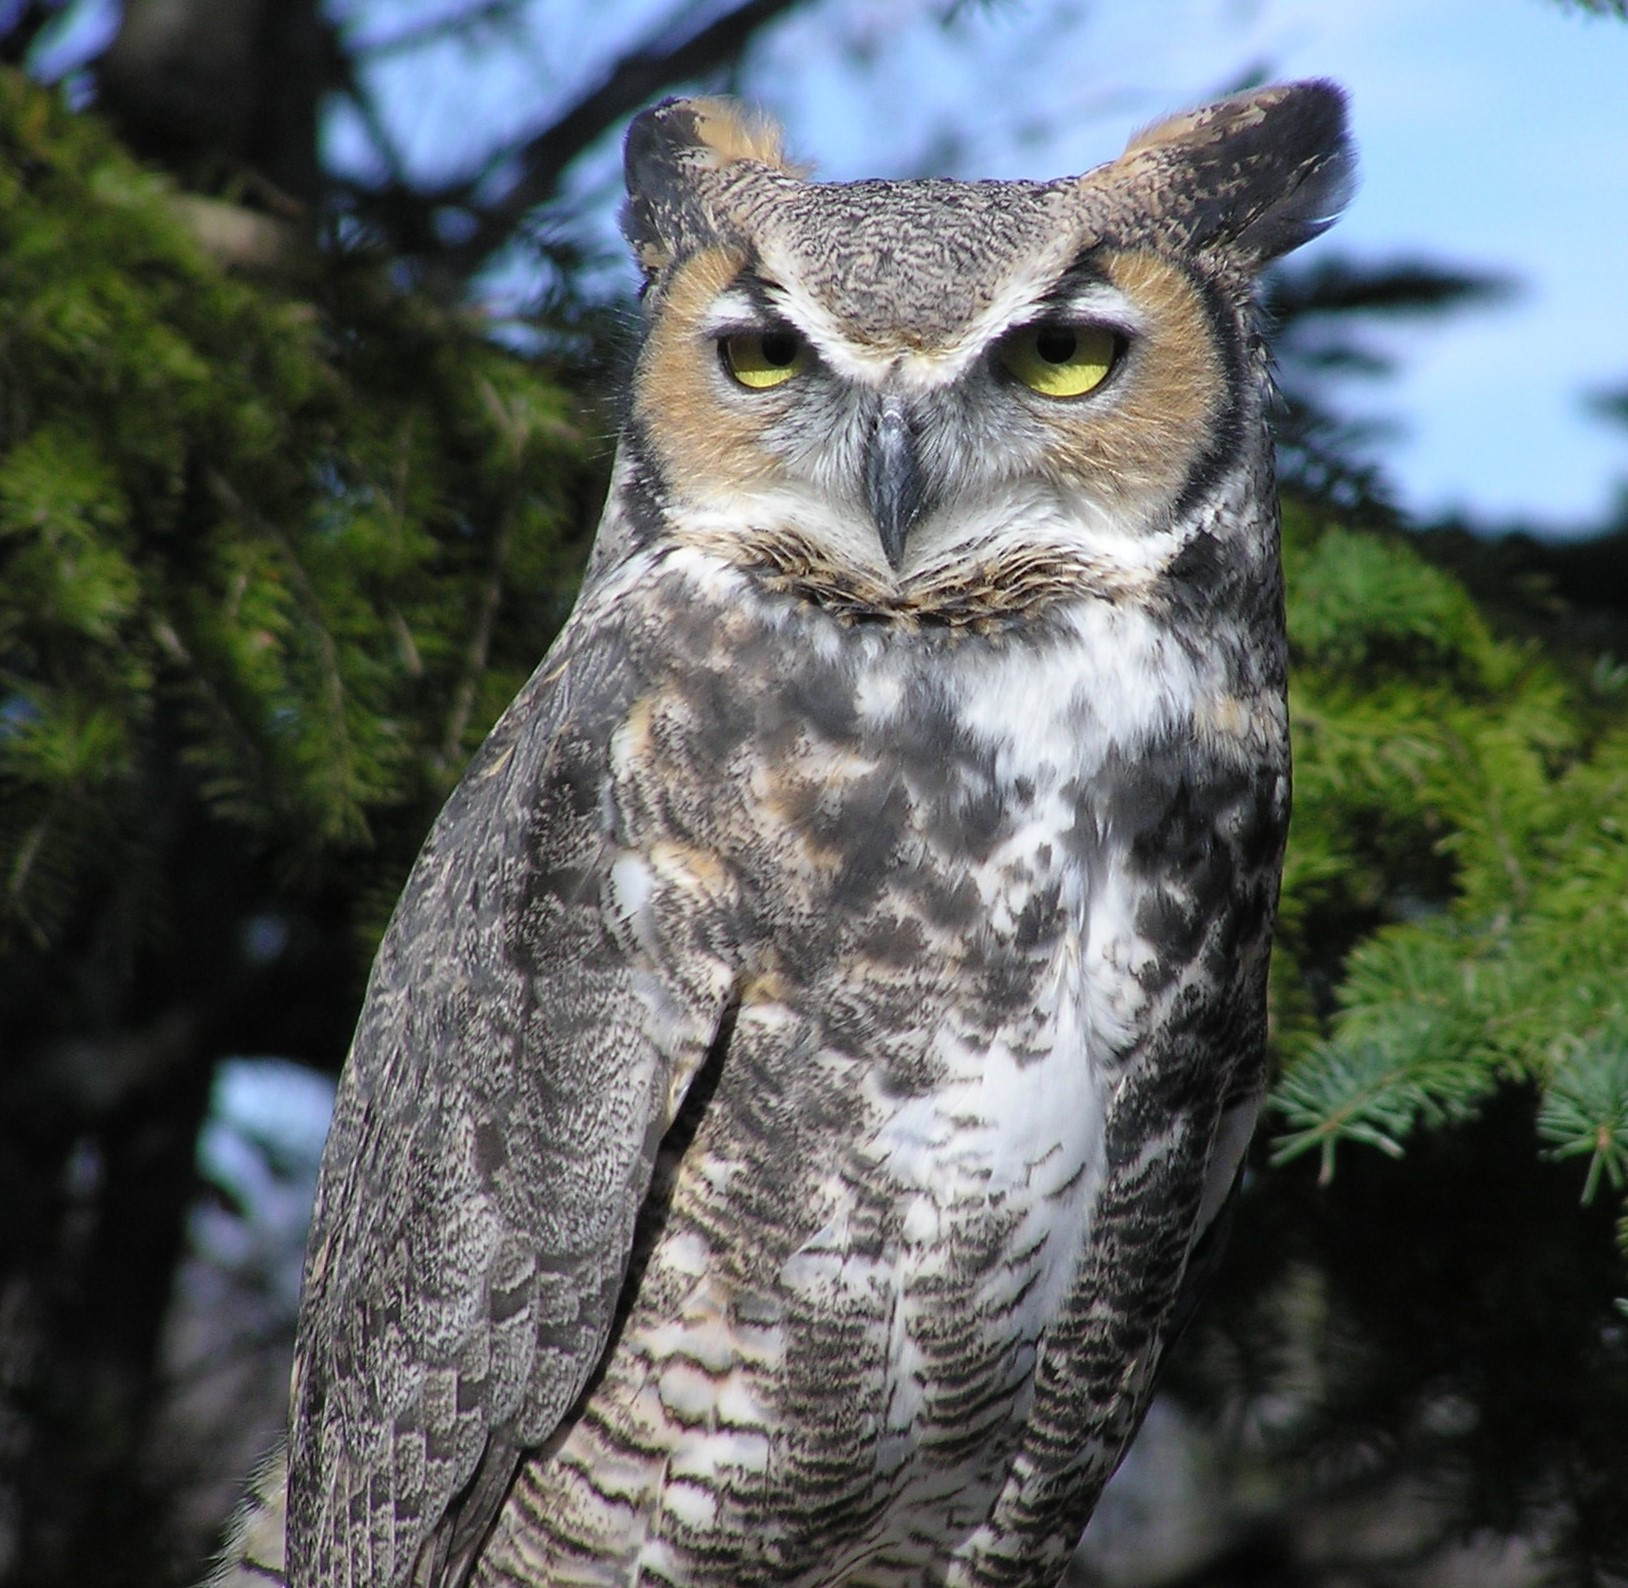 Bubo, a great horned owl